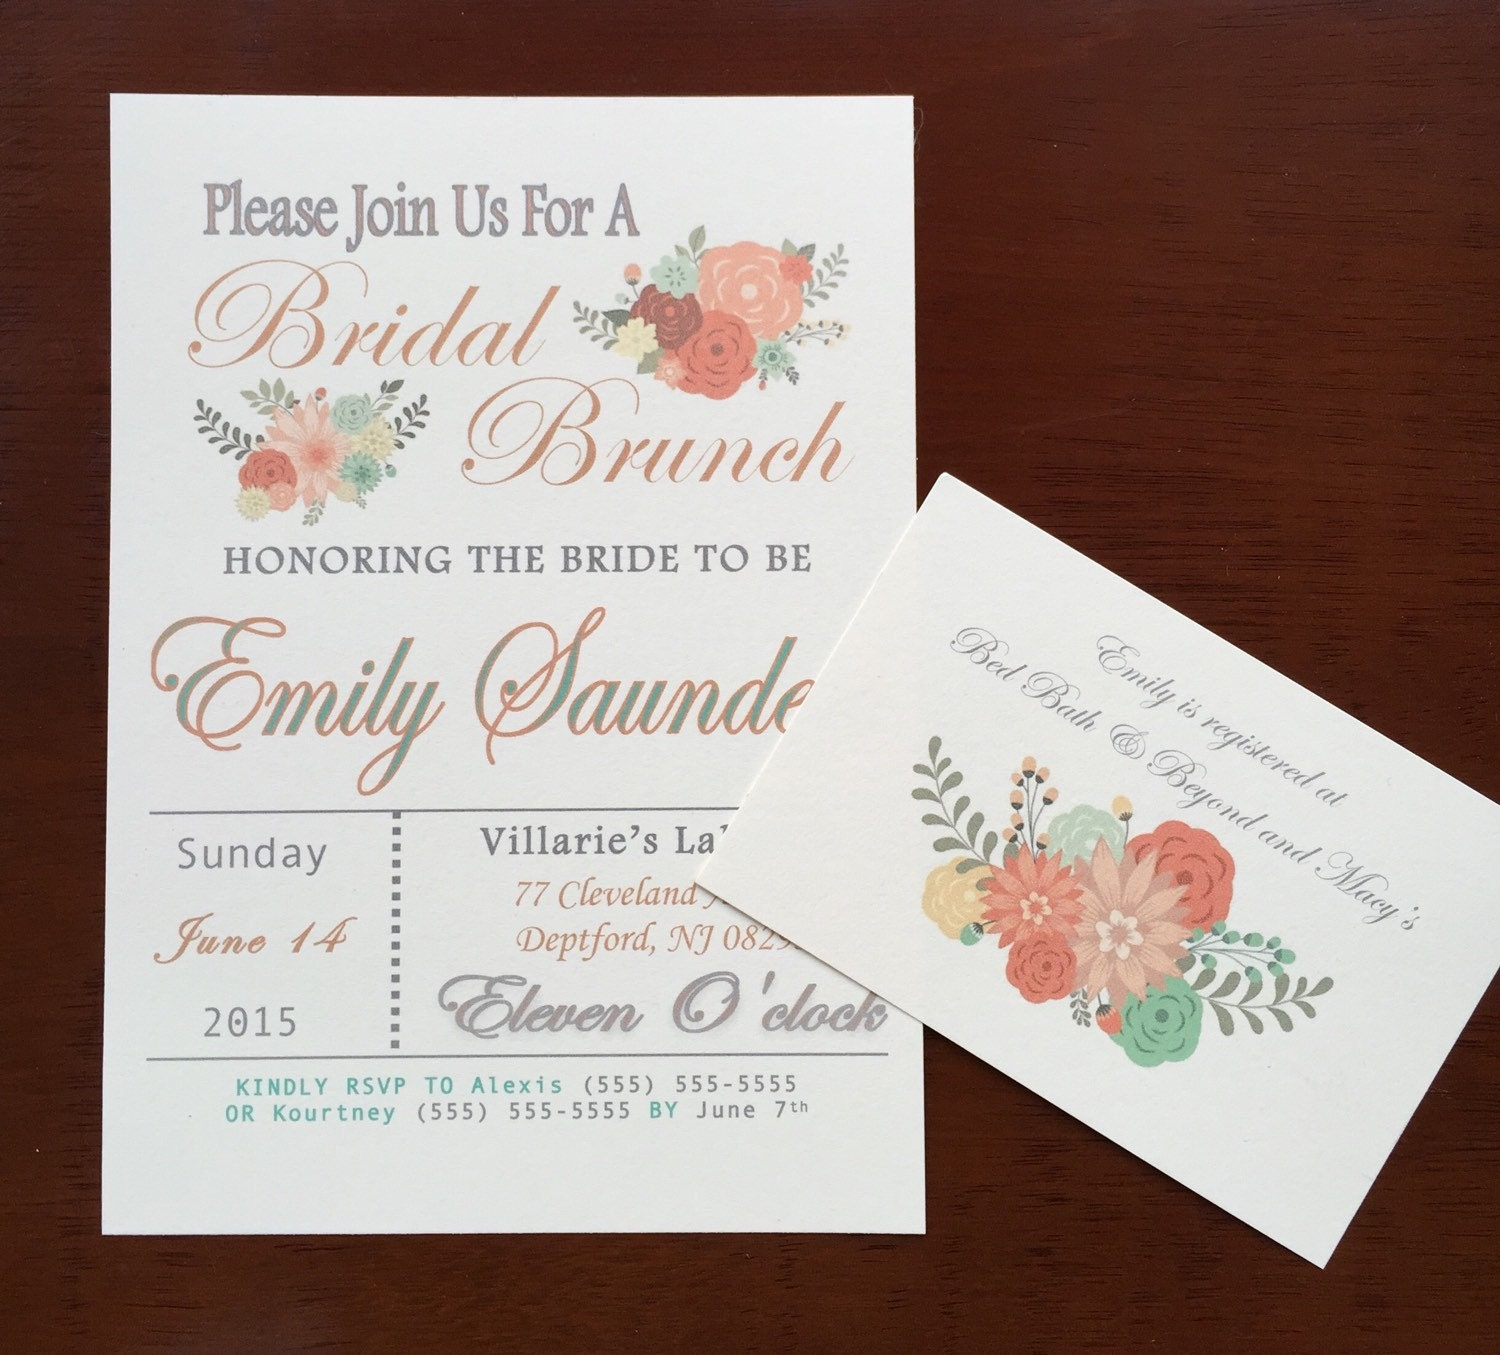 Bridal brunch bridal shower invitation for Wedding brunch invitations